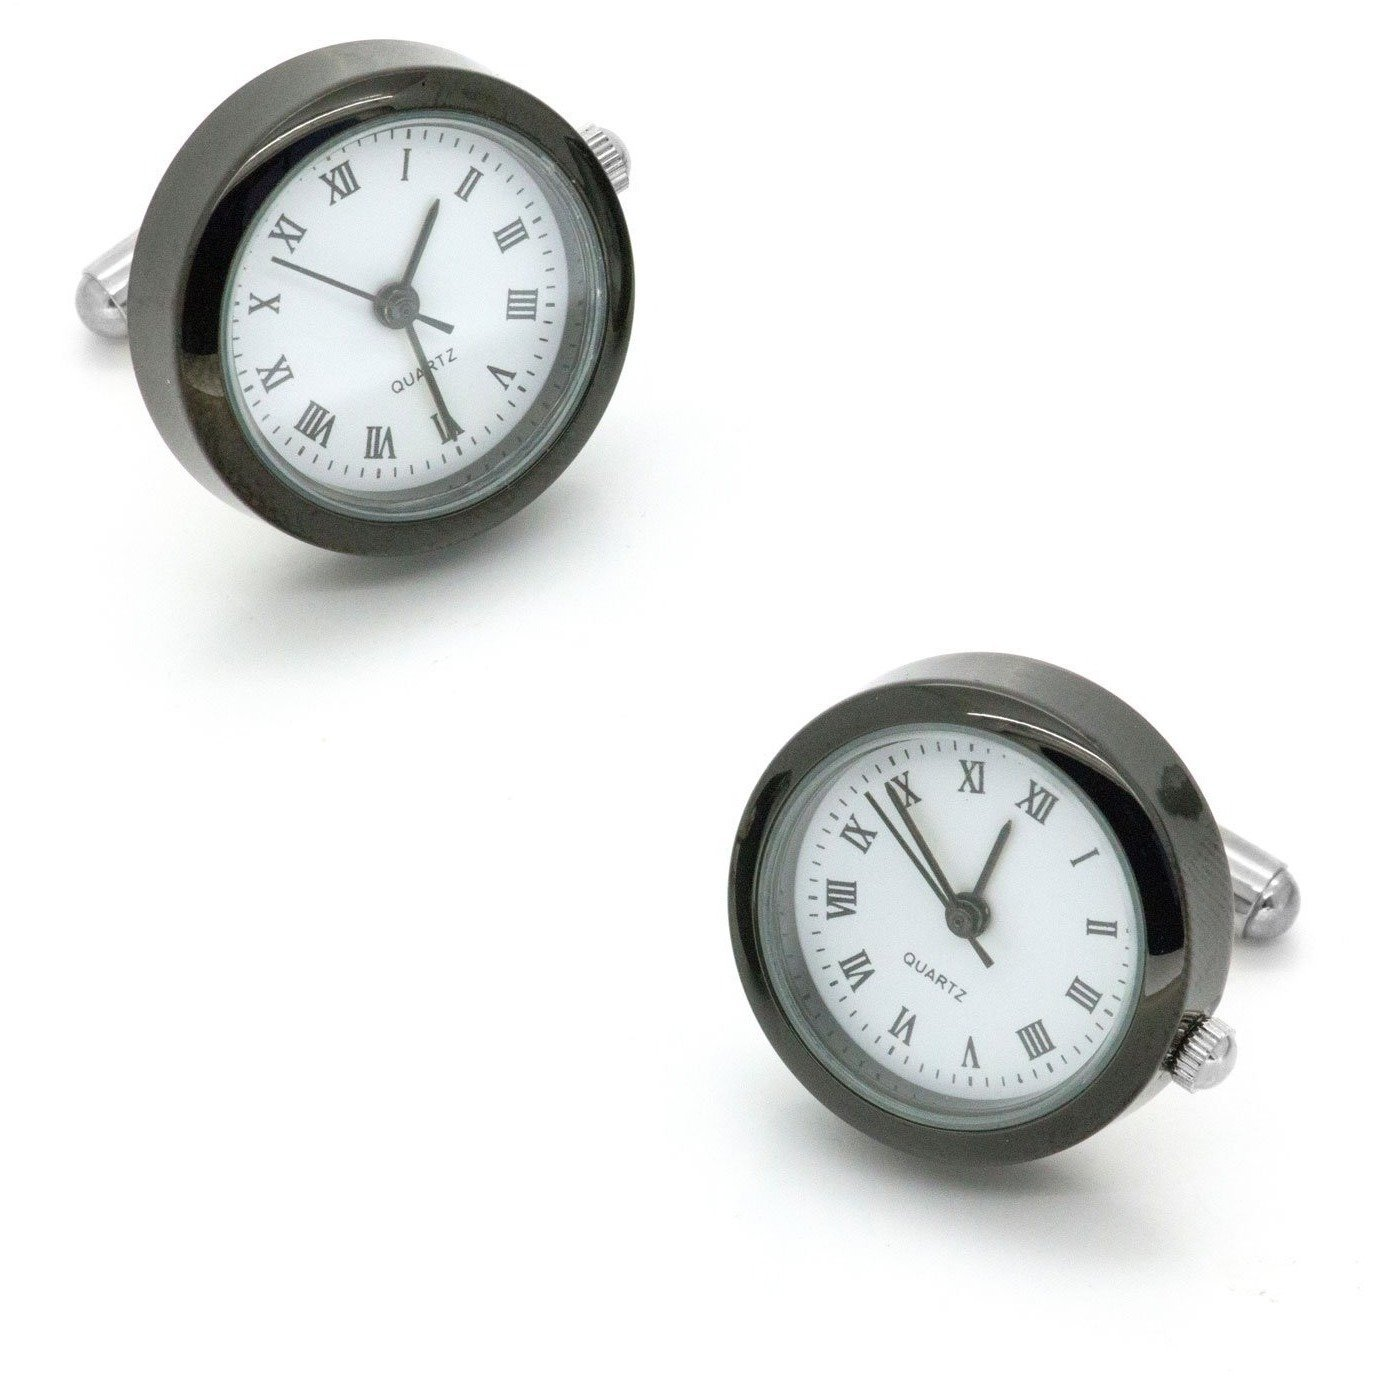 White and Gunmetal Working Quartz Watch Cufflinks, Novelty Cufflinks, Cuffed.com.au, CL5554, $59.00